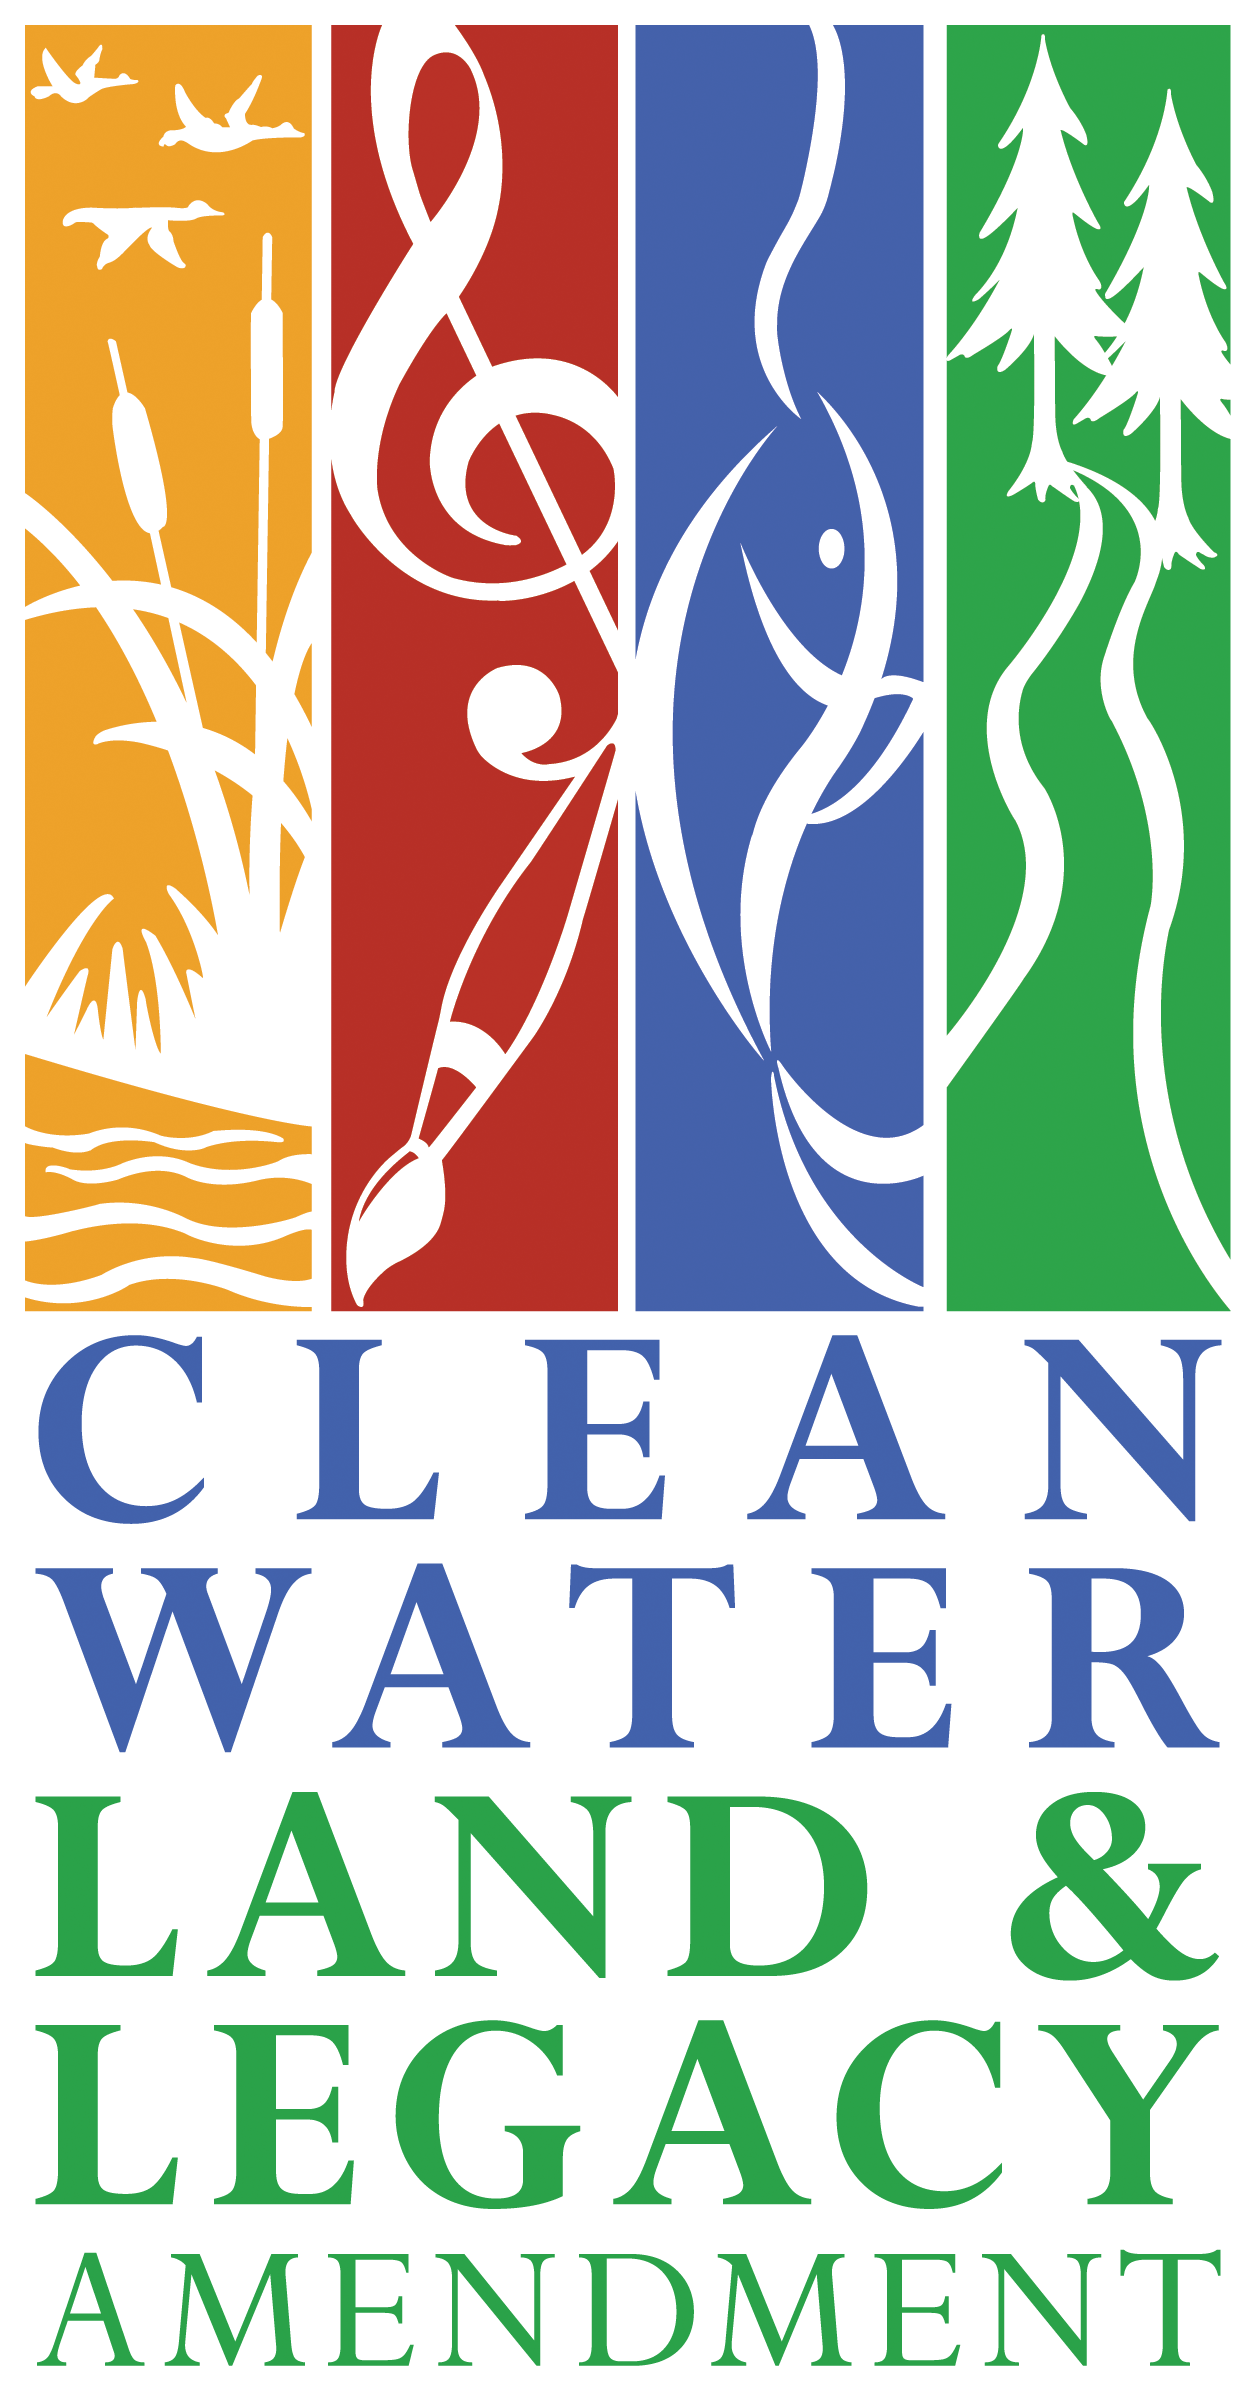 Minnesota Clean Water, Land & Legacy Amendment logo